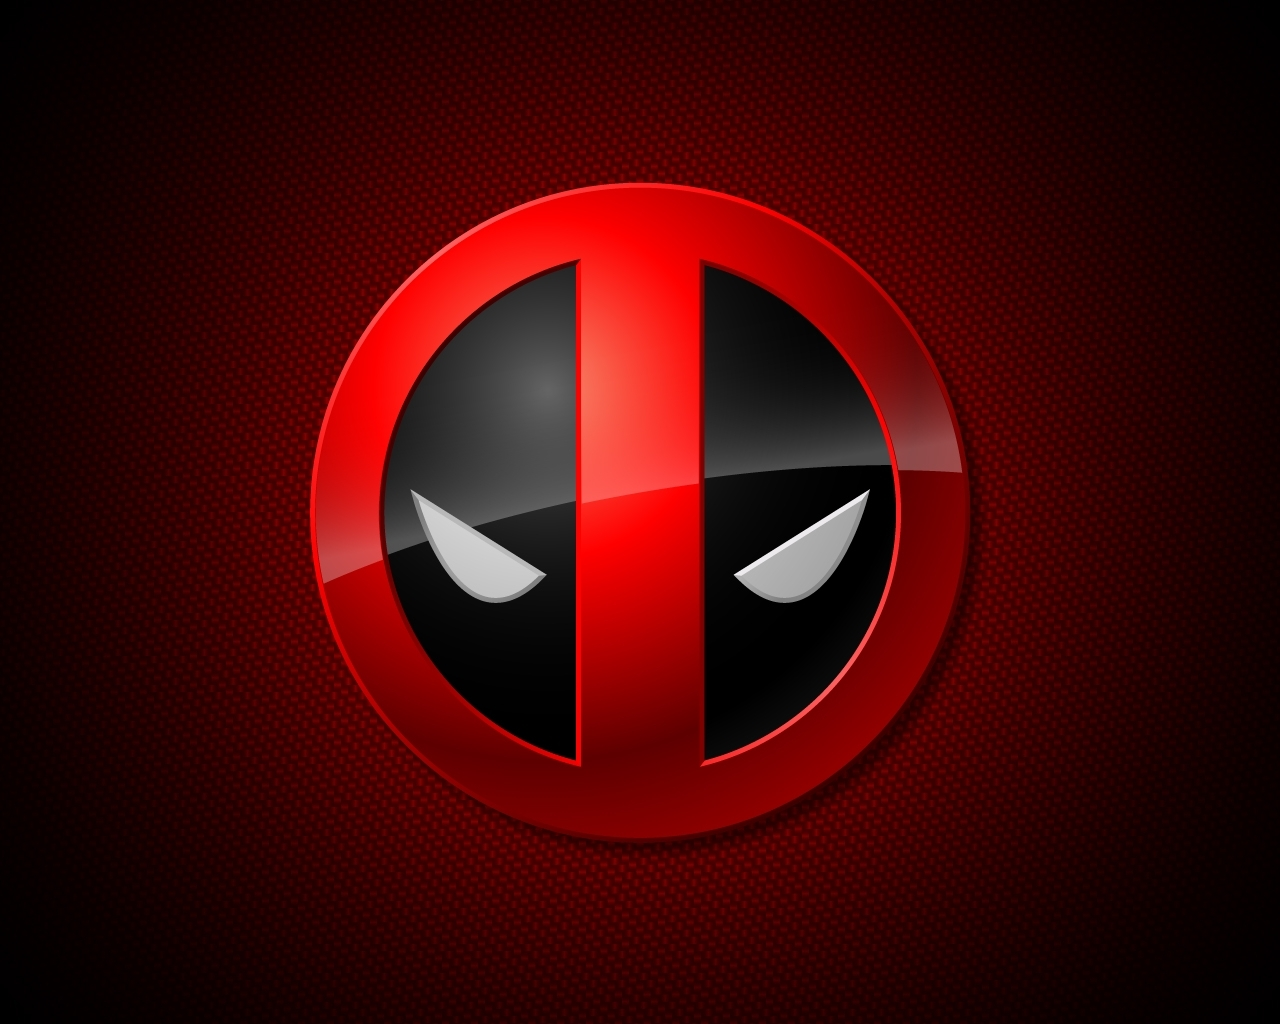 deadpool logo wallpaper hd ~ action adventure games res: 1280x1024